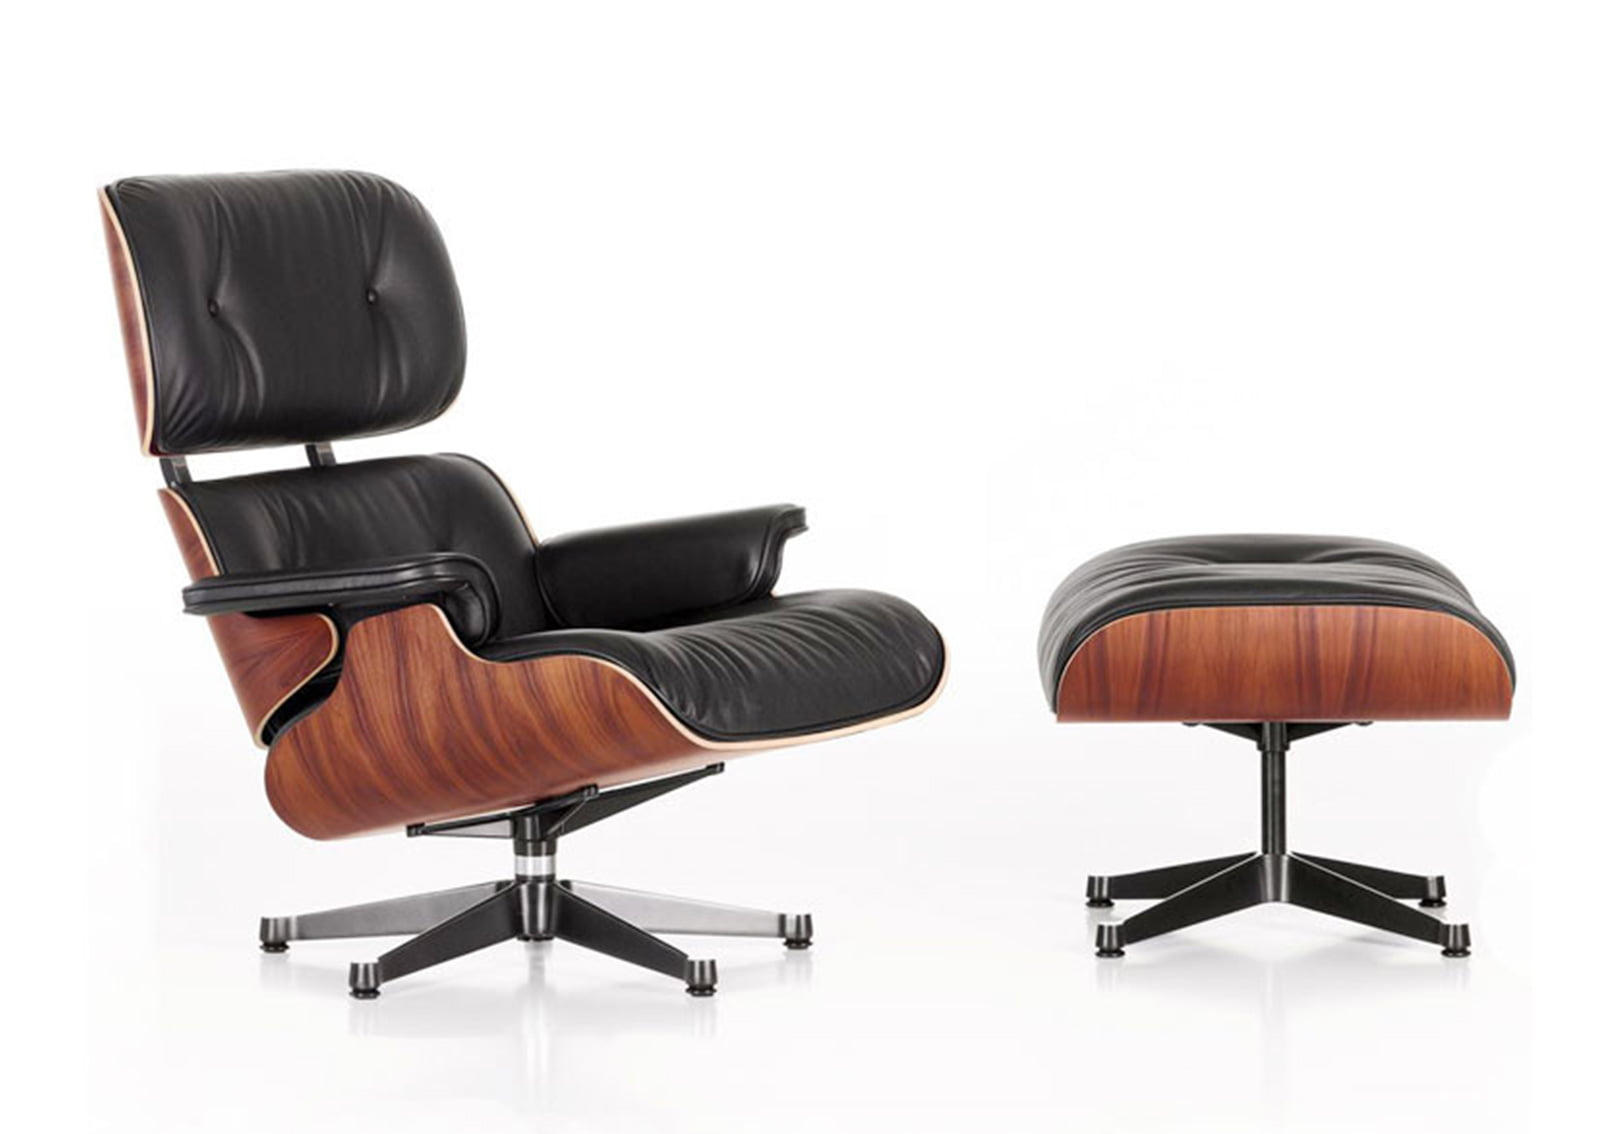 eames chairs eames lounge chair with ottoman furnishplus. Black Bedroom Furniture Sets. Home Design Ideas